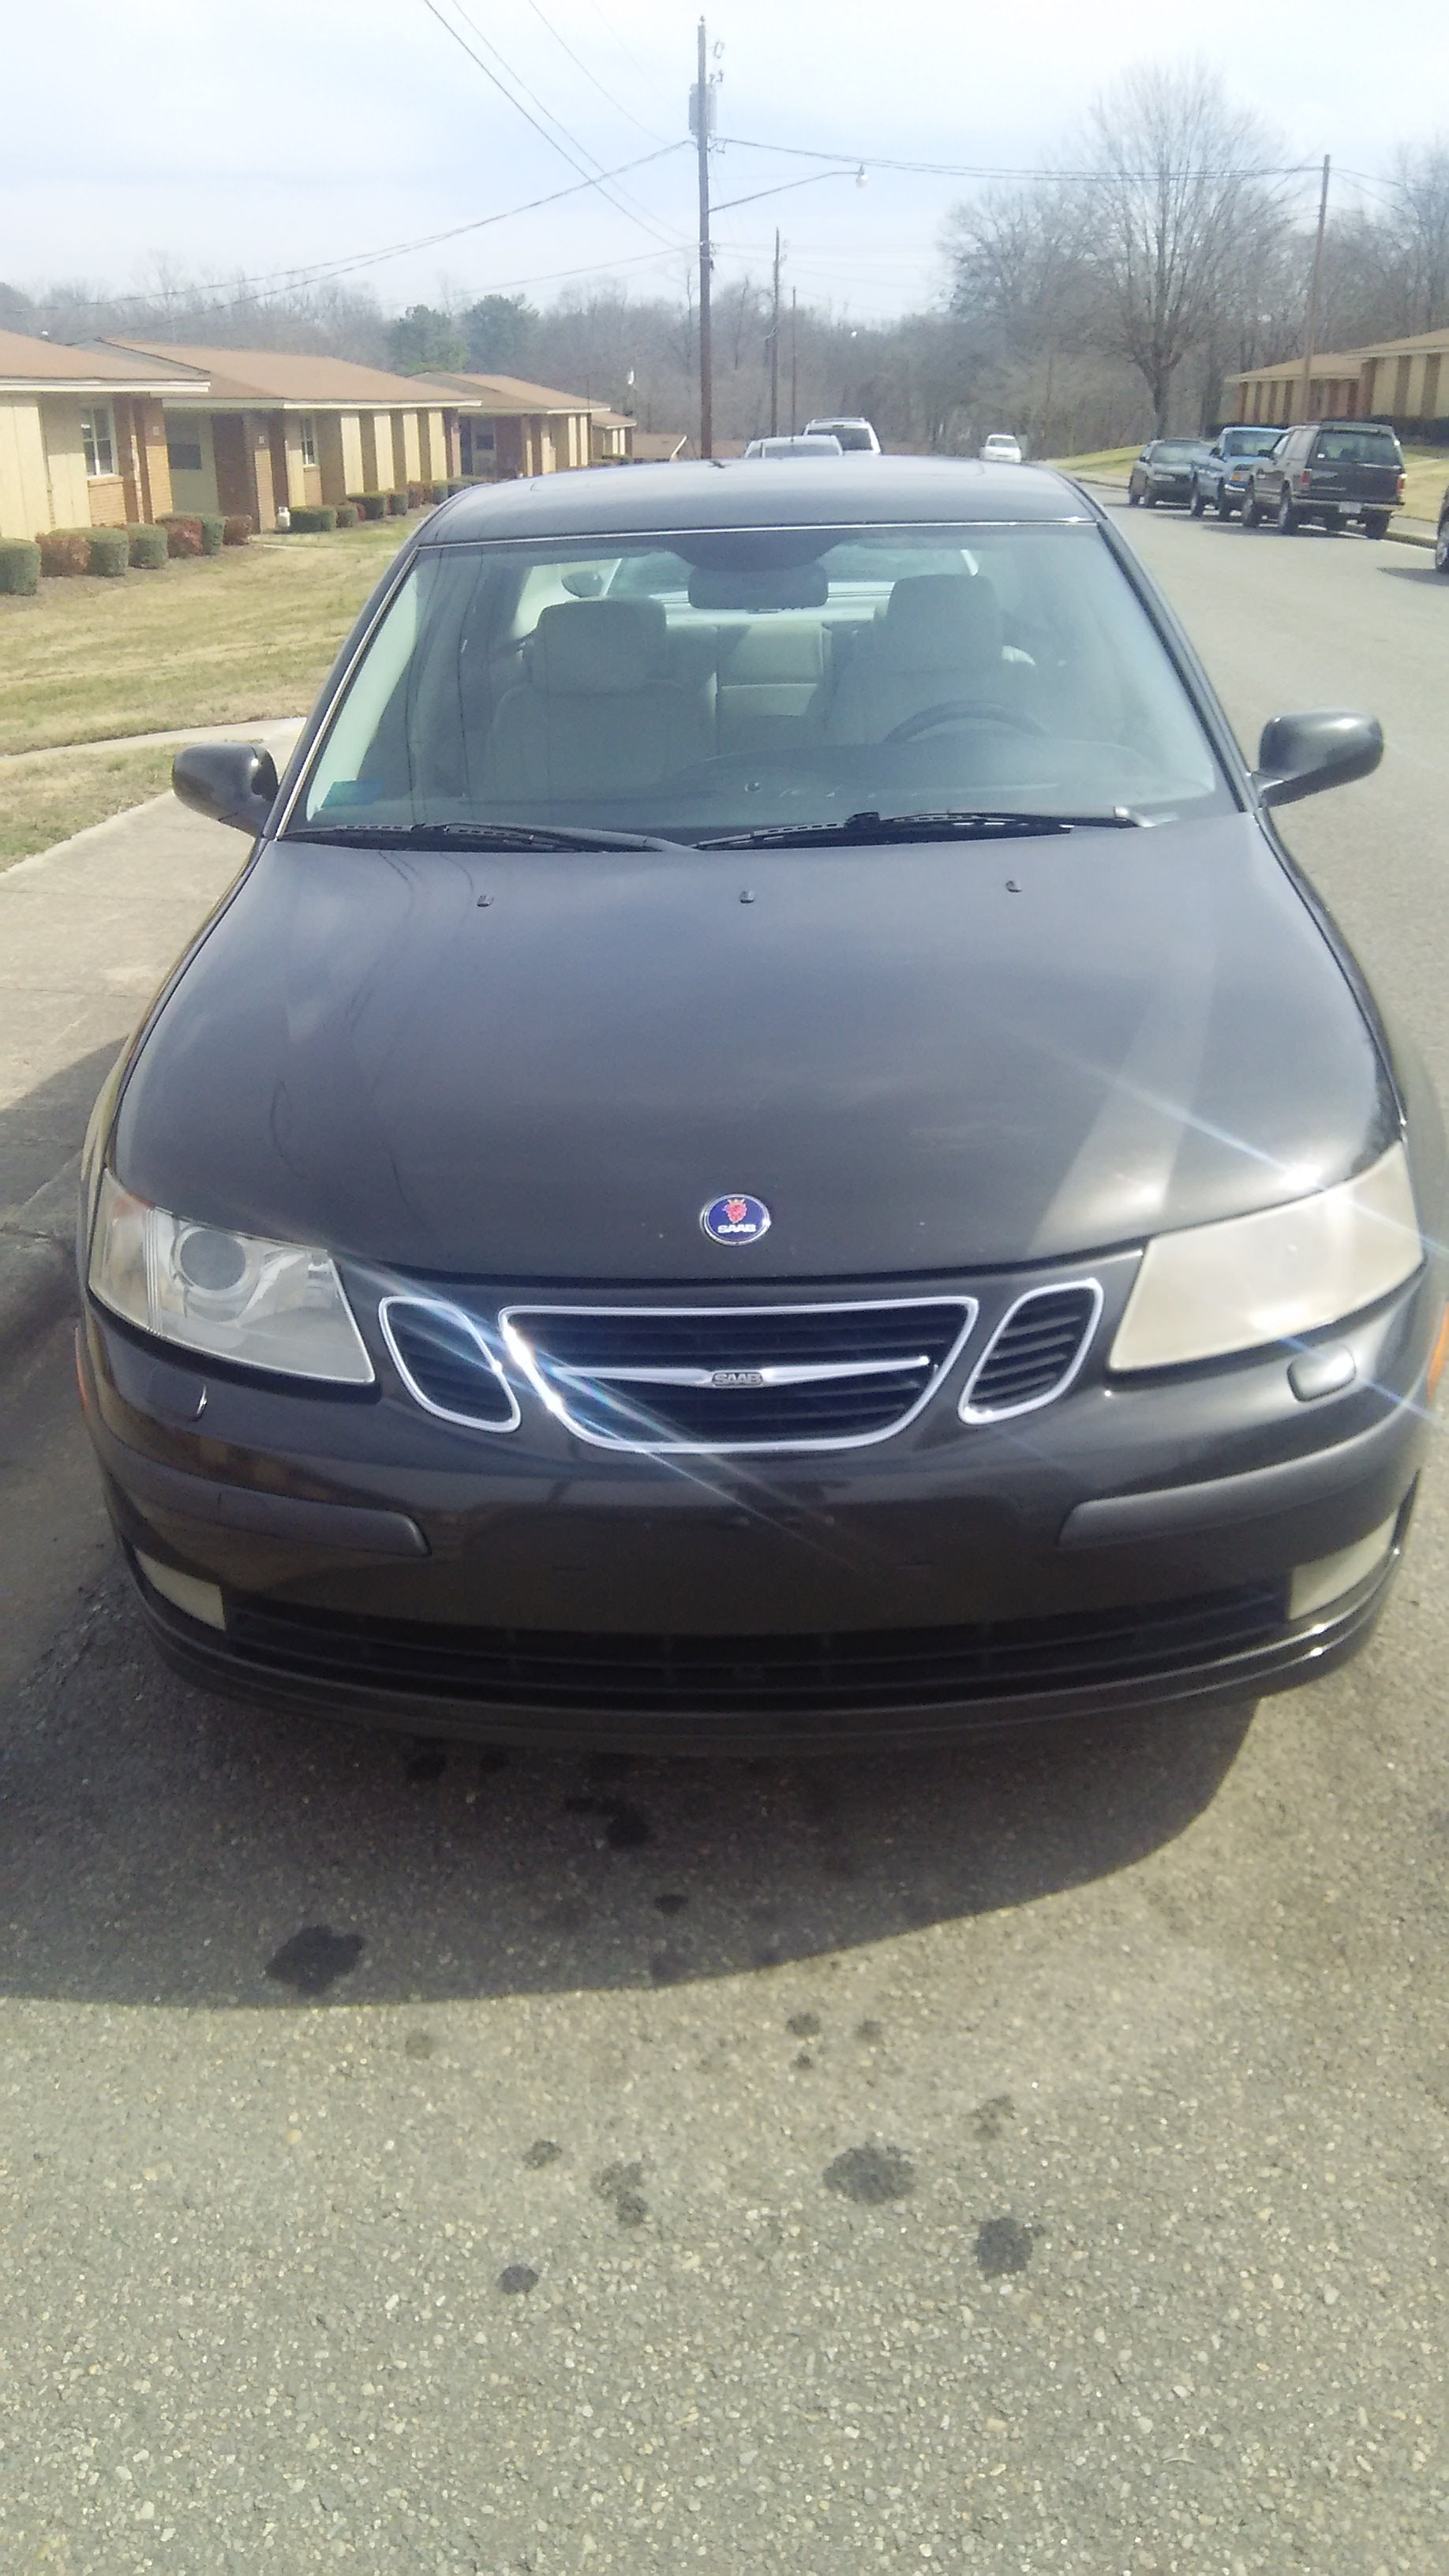 Junk 2003 Saab 9-3 in Mount Airy